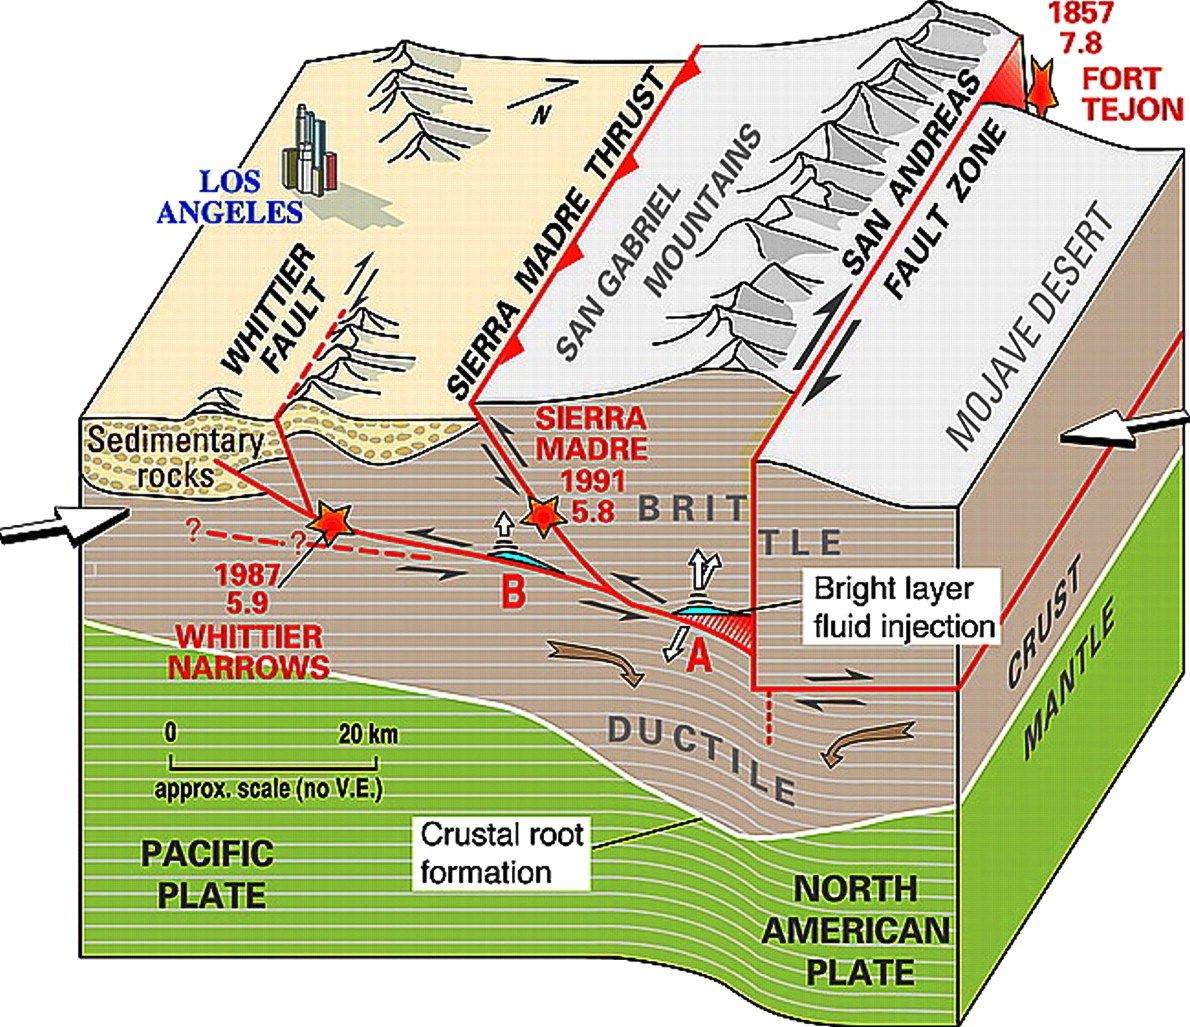 Geology In Shallow Earthquakes Deeper Tremors Along Southern San Andreas Fault Compared By Researchers Geology Plate Tectonics Earth Science